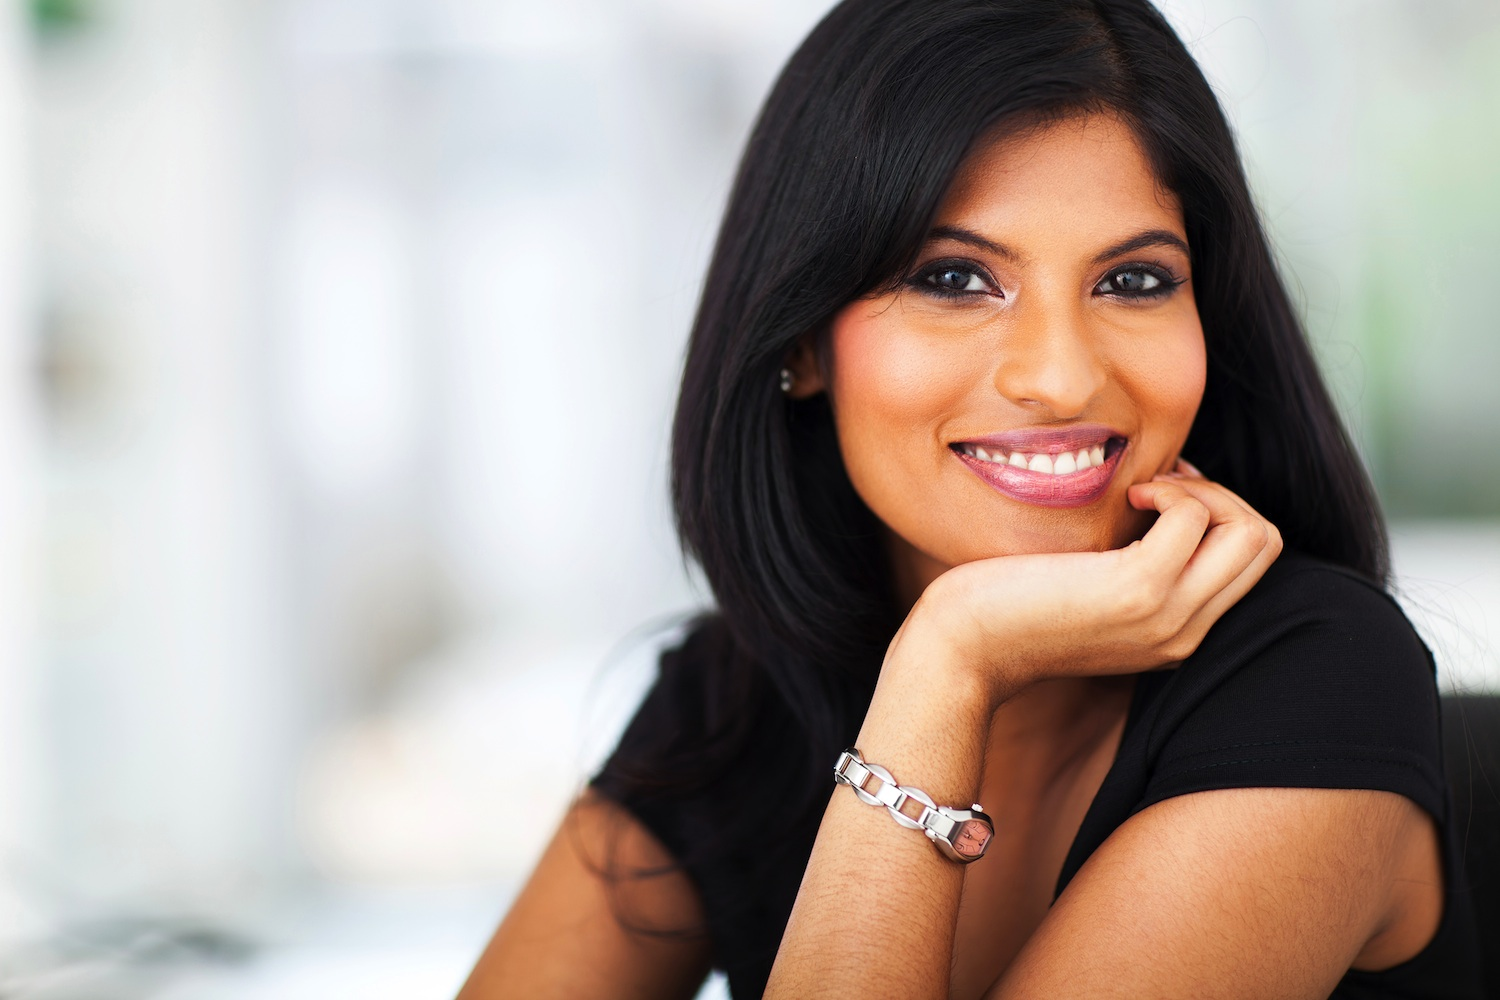 hindu single women in keyport Indian women | indian singles | indian girls | indian men | single western men why choose indiancupid indiancupid is a premier indian dating and matrimonial site bringing together thousands of non resident indian singles based in the usa, uk, canada, australia and around the world.